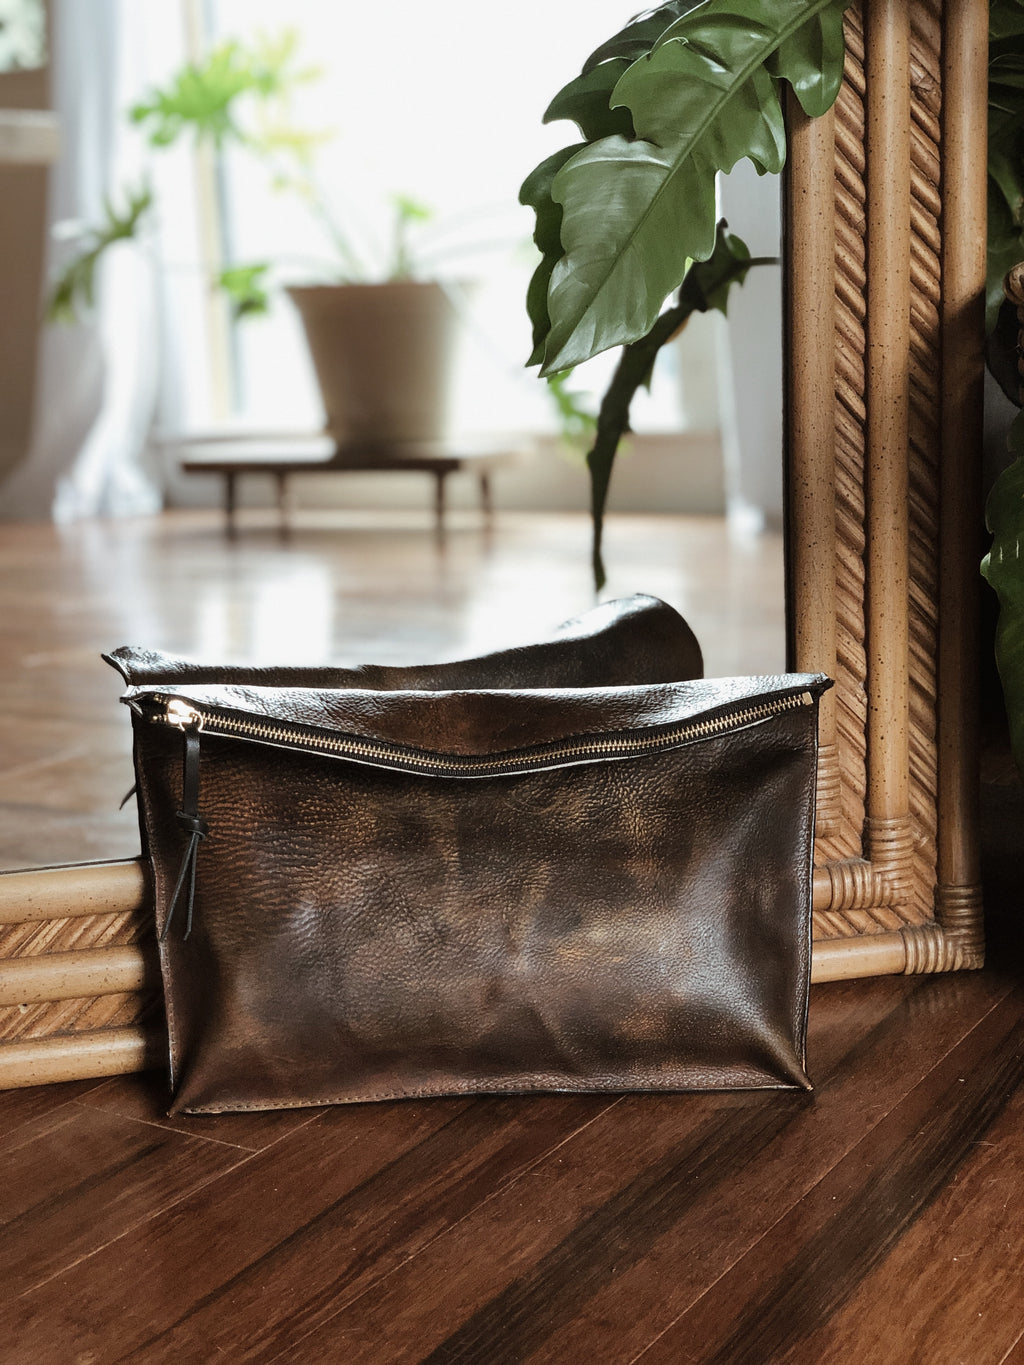 Patina Dream Hand Painted Clutch